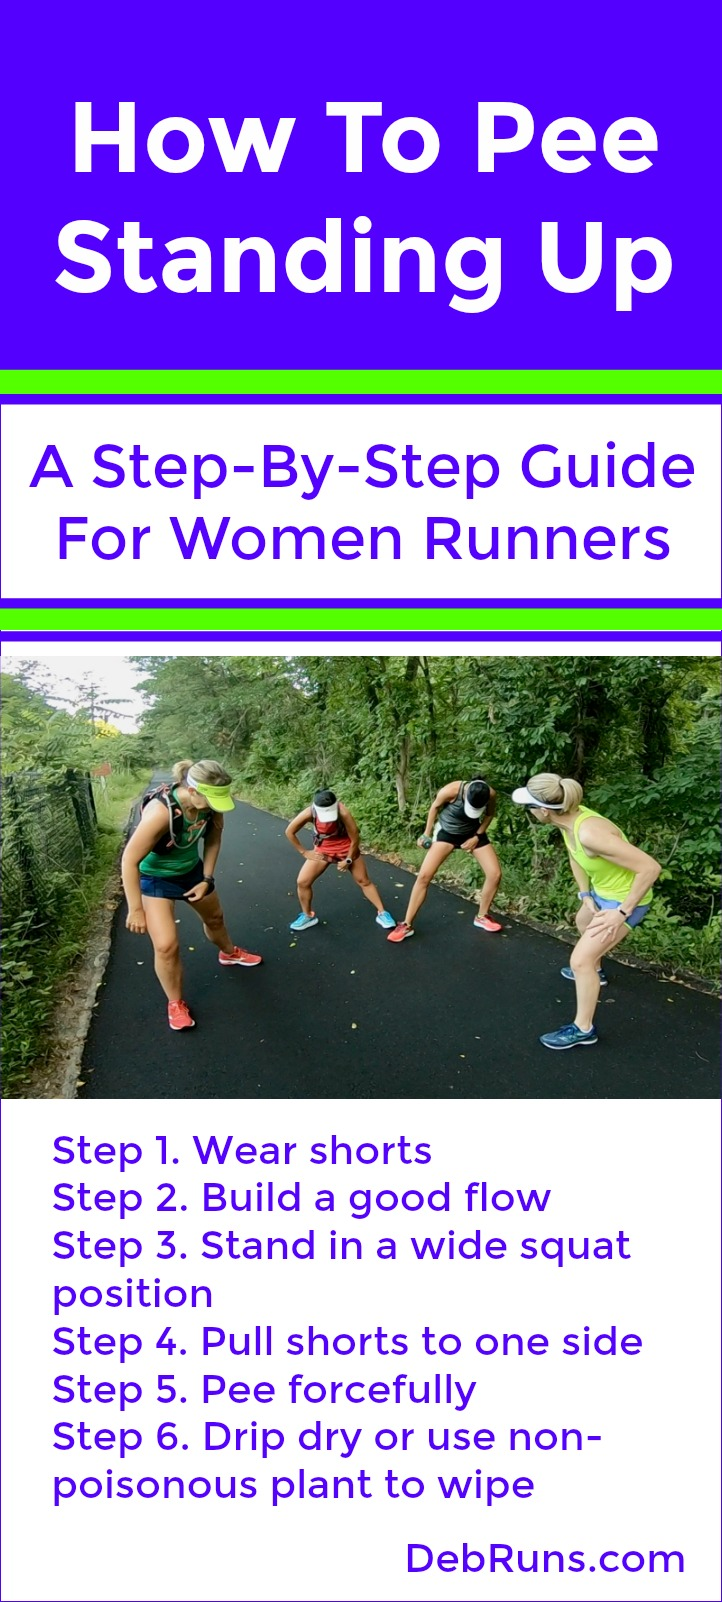 How To Pee Standing Up:  A Step-By-Step Guide For Women Runners